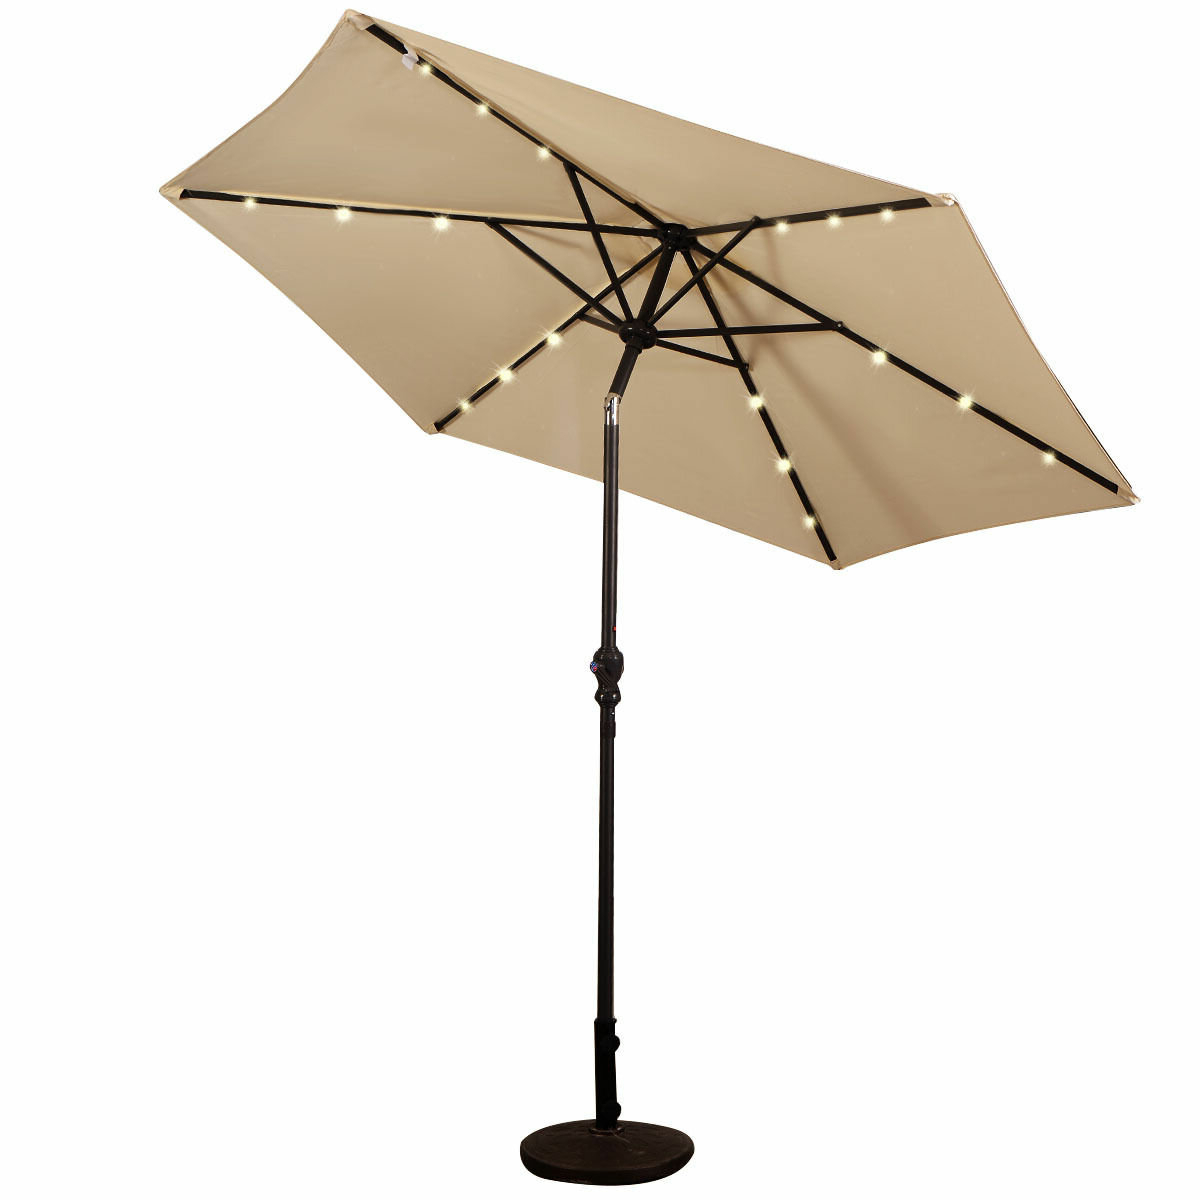 Freeport Park Eastwood 9' Market Umbrella With Popular Branscum Lighted Umbrellas (View 11 of 20)